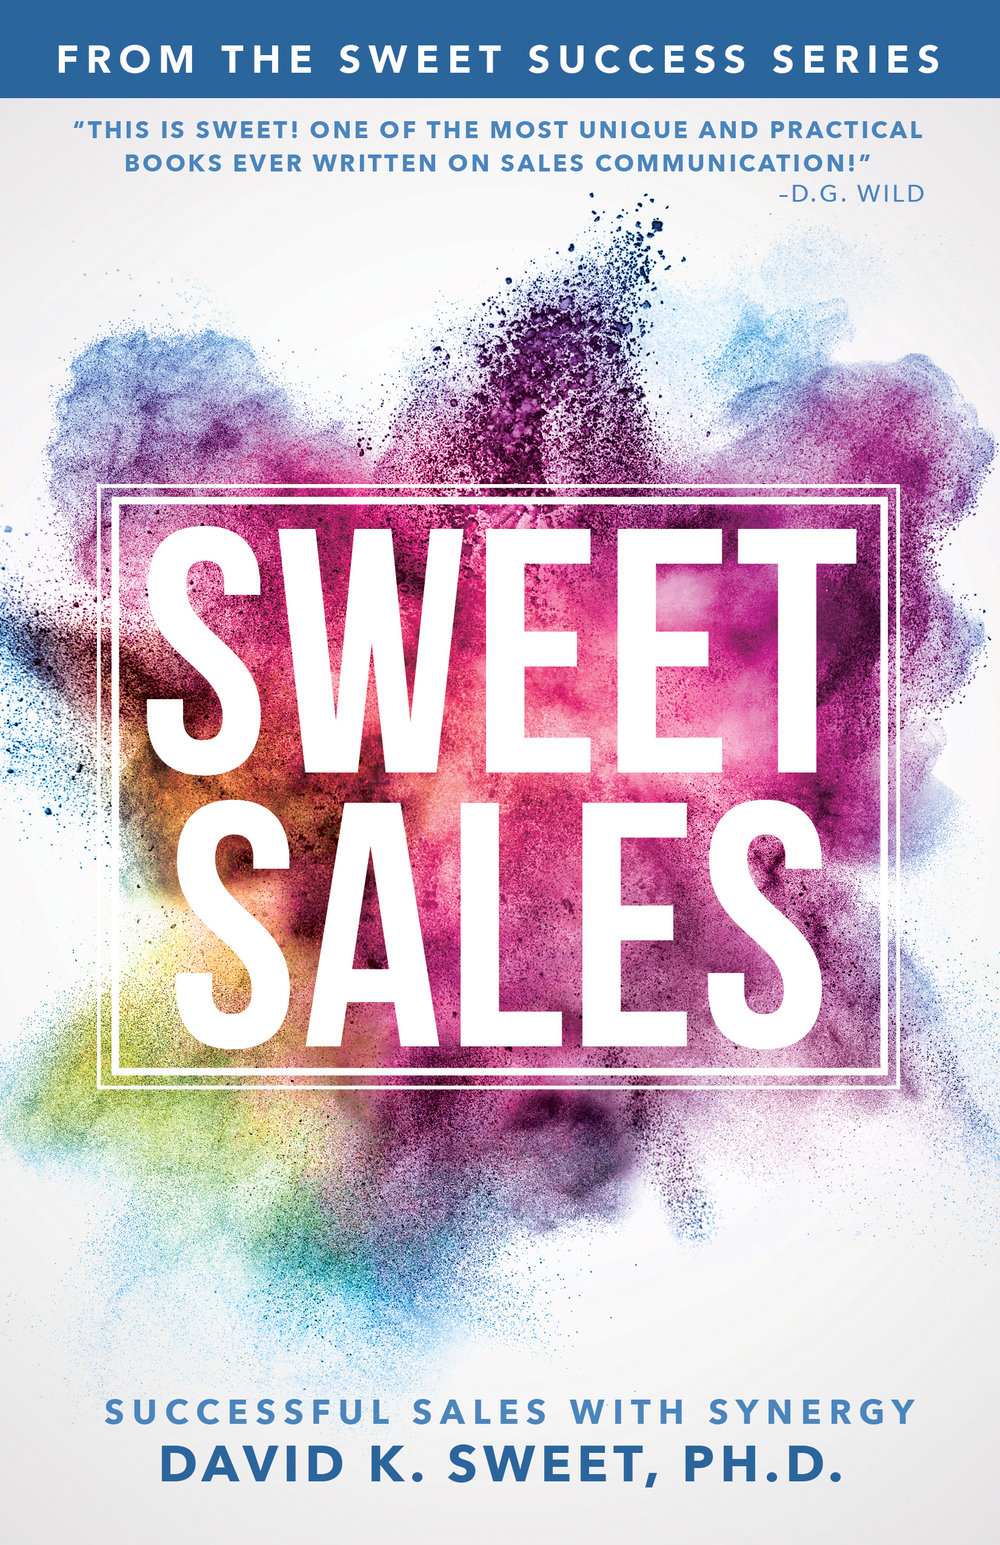 Sweet Sales - By david k. sweet, phd